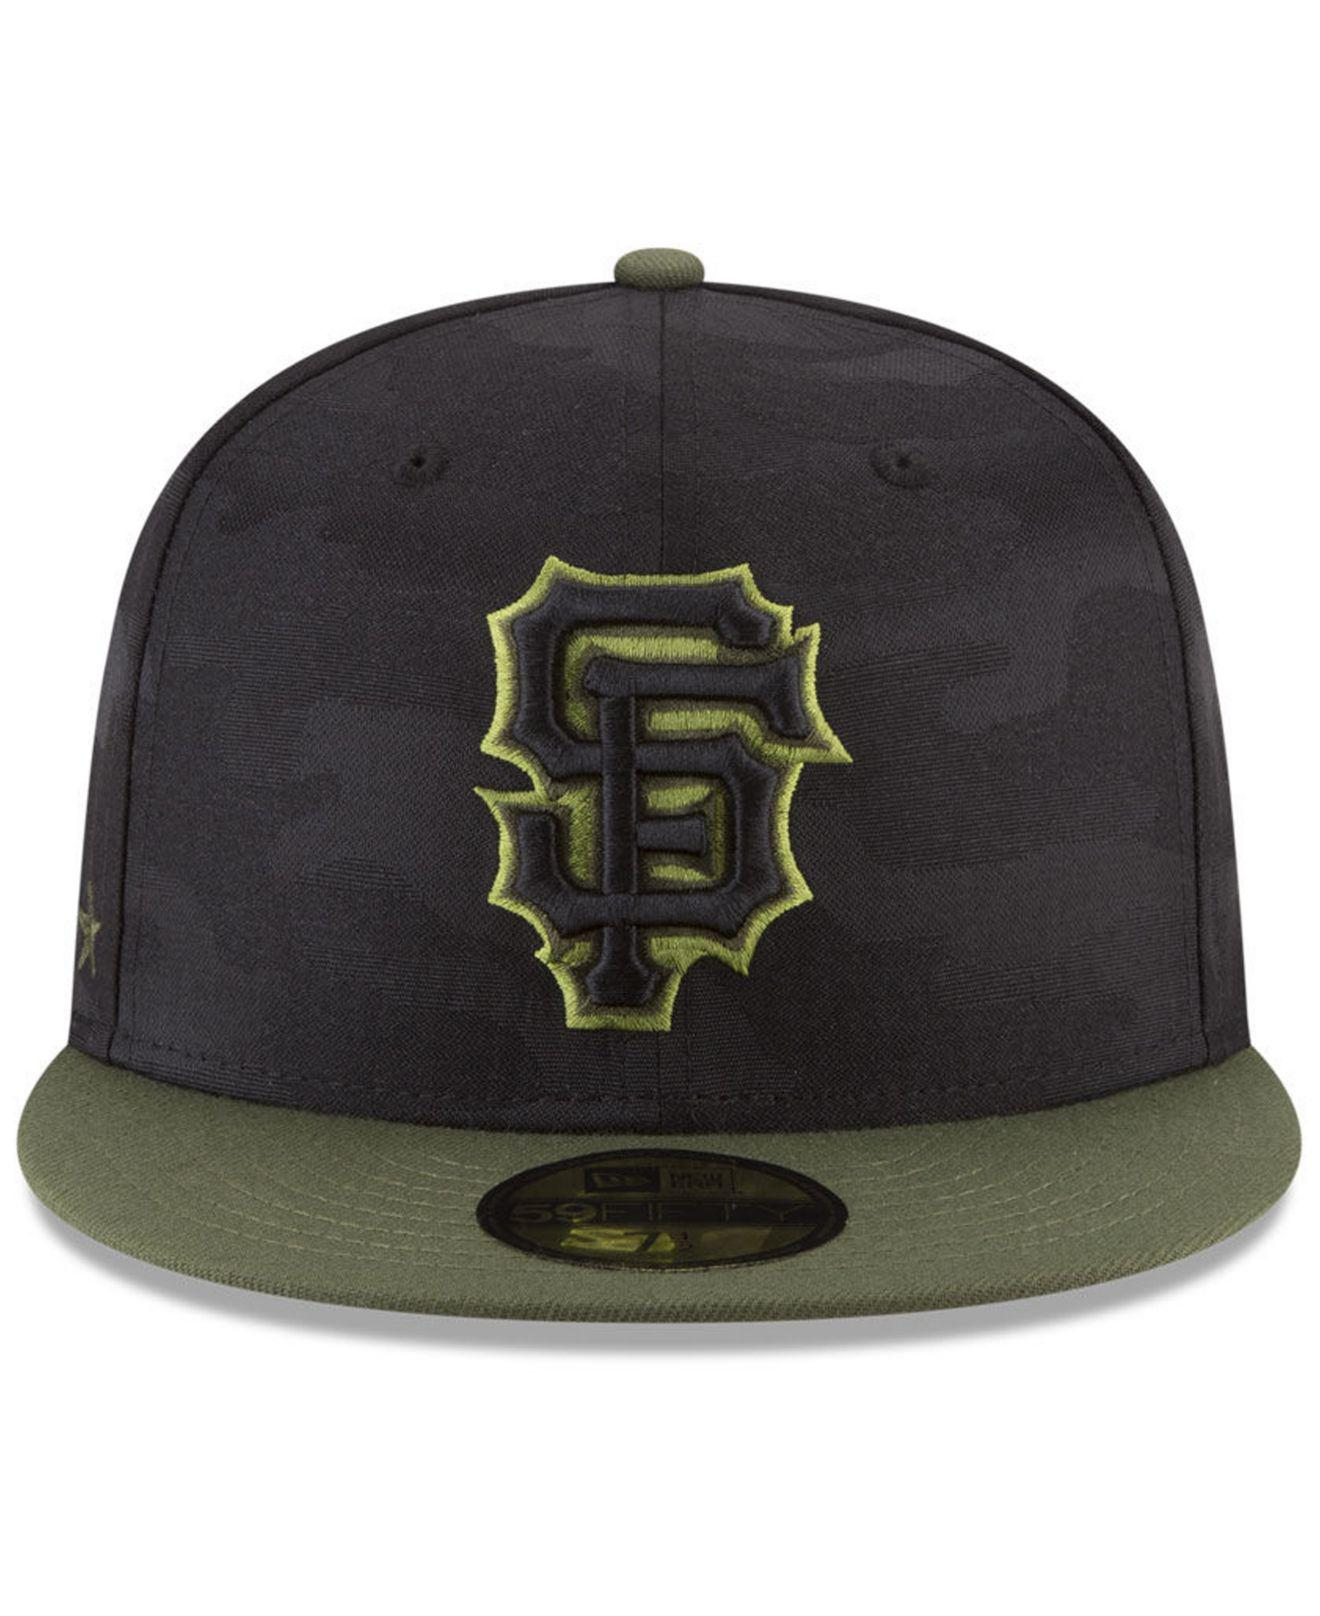 newest b0bf2 eb460 ... cheapest lyst ktz san francisco giants memorial day 59fifty fitted cap  in black for men 83c5d